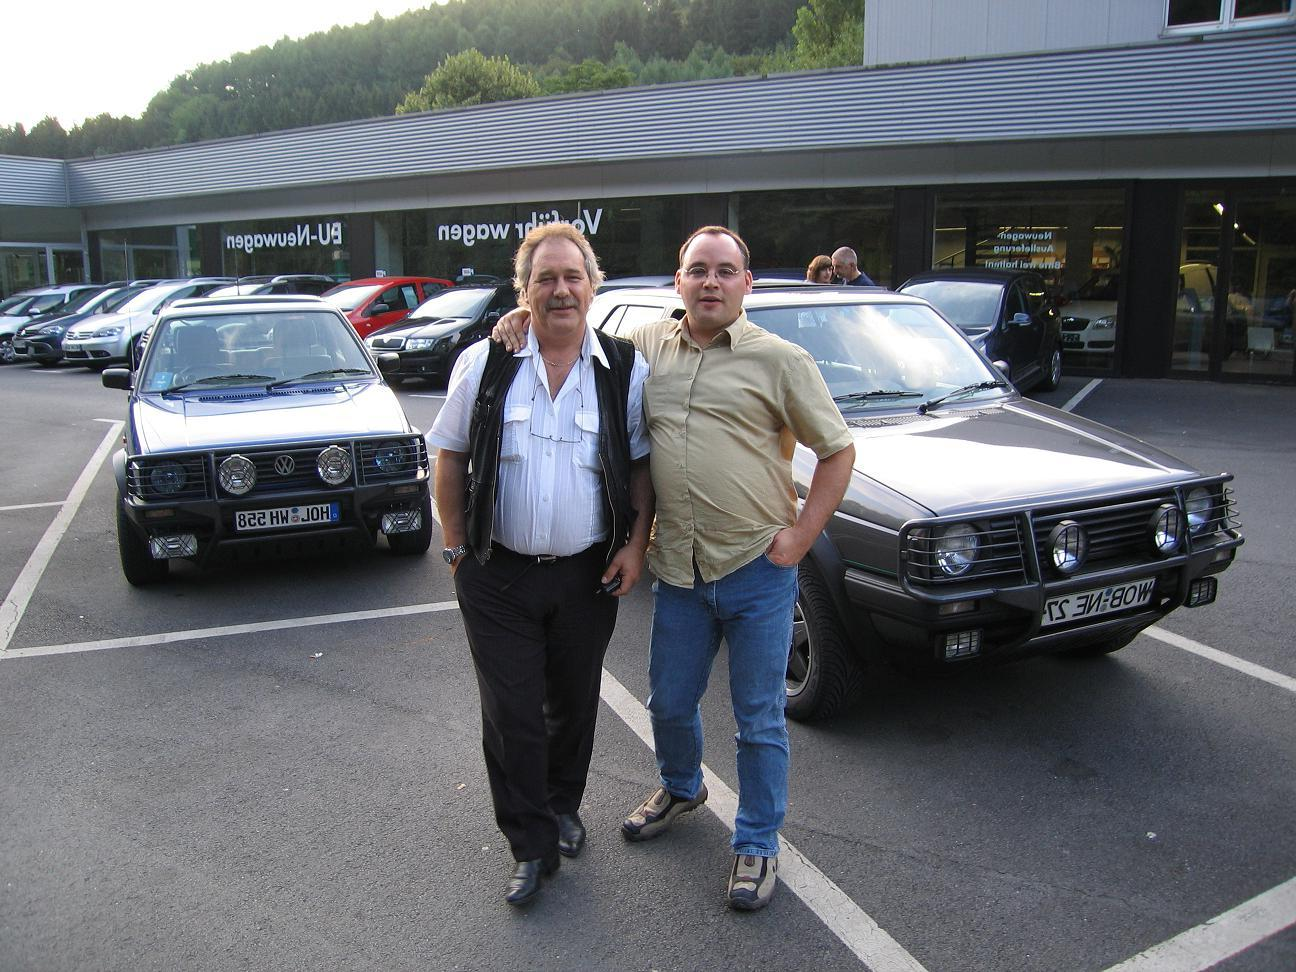 Country Golf MK2 syncro